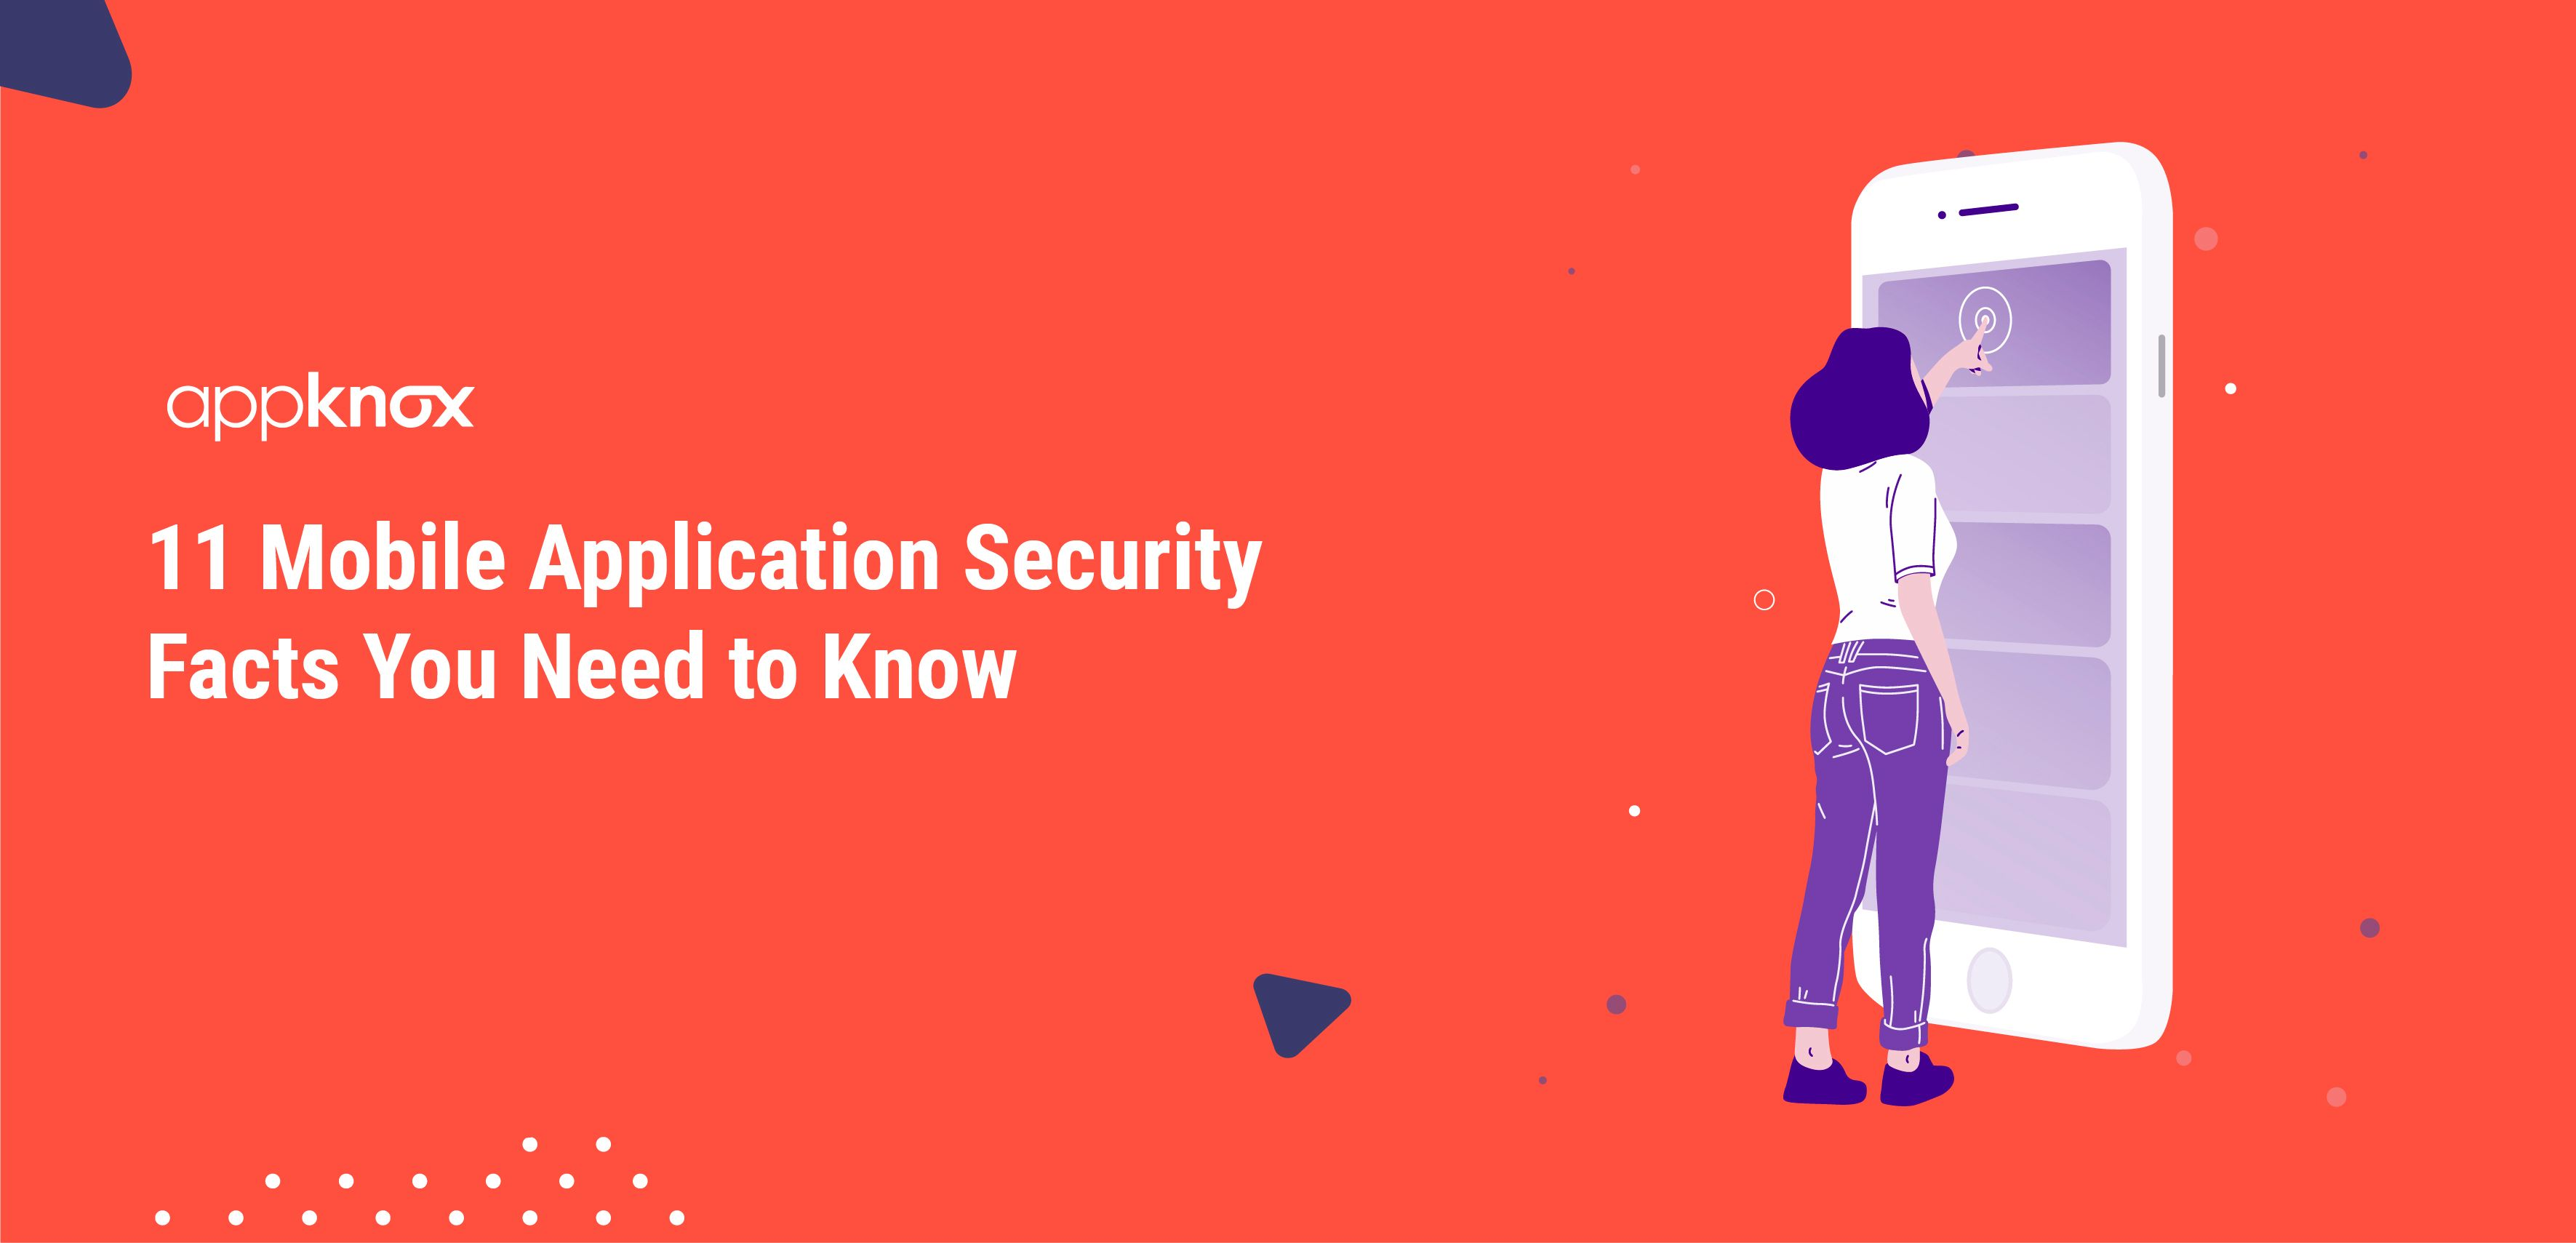 11 Mobile Application Security Facts You Need to Know